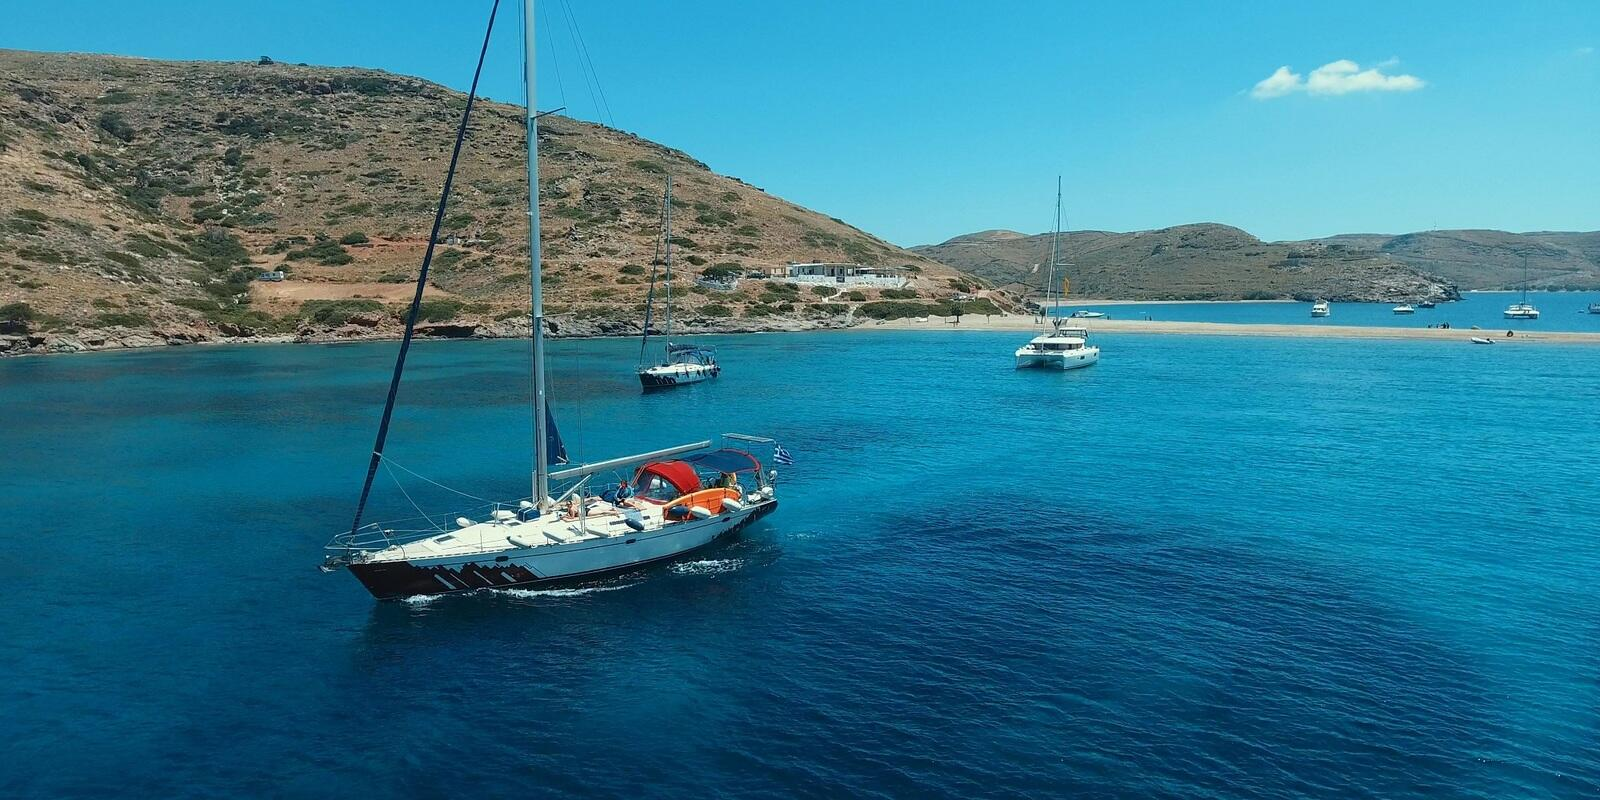 Premium one way sailing trip - taste BOTH the Saronic AND Cyclades islands. From Paros to Athens